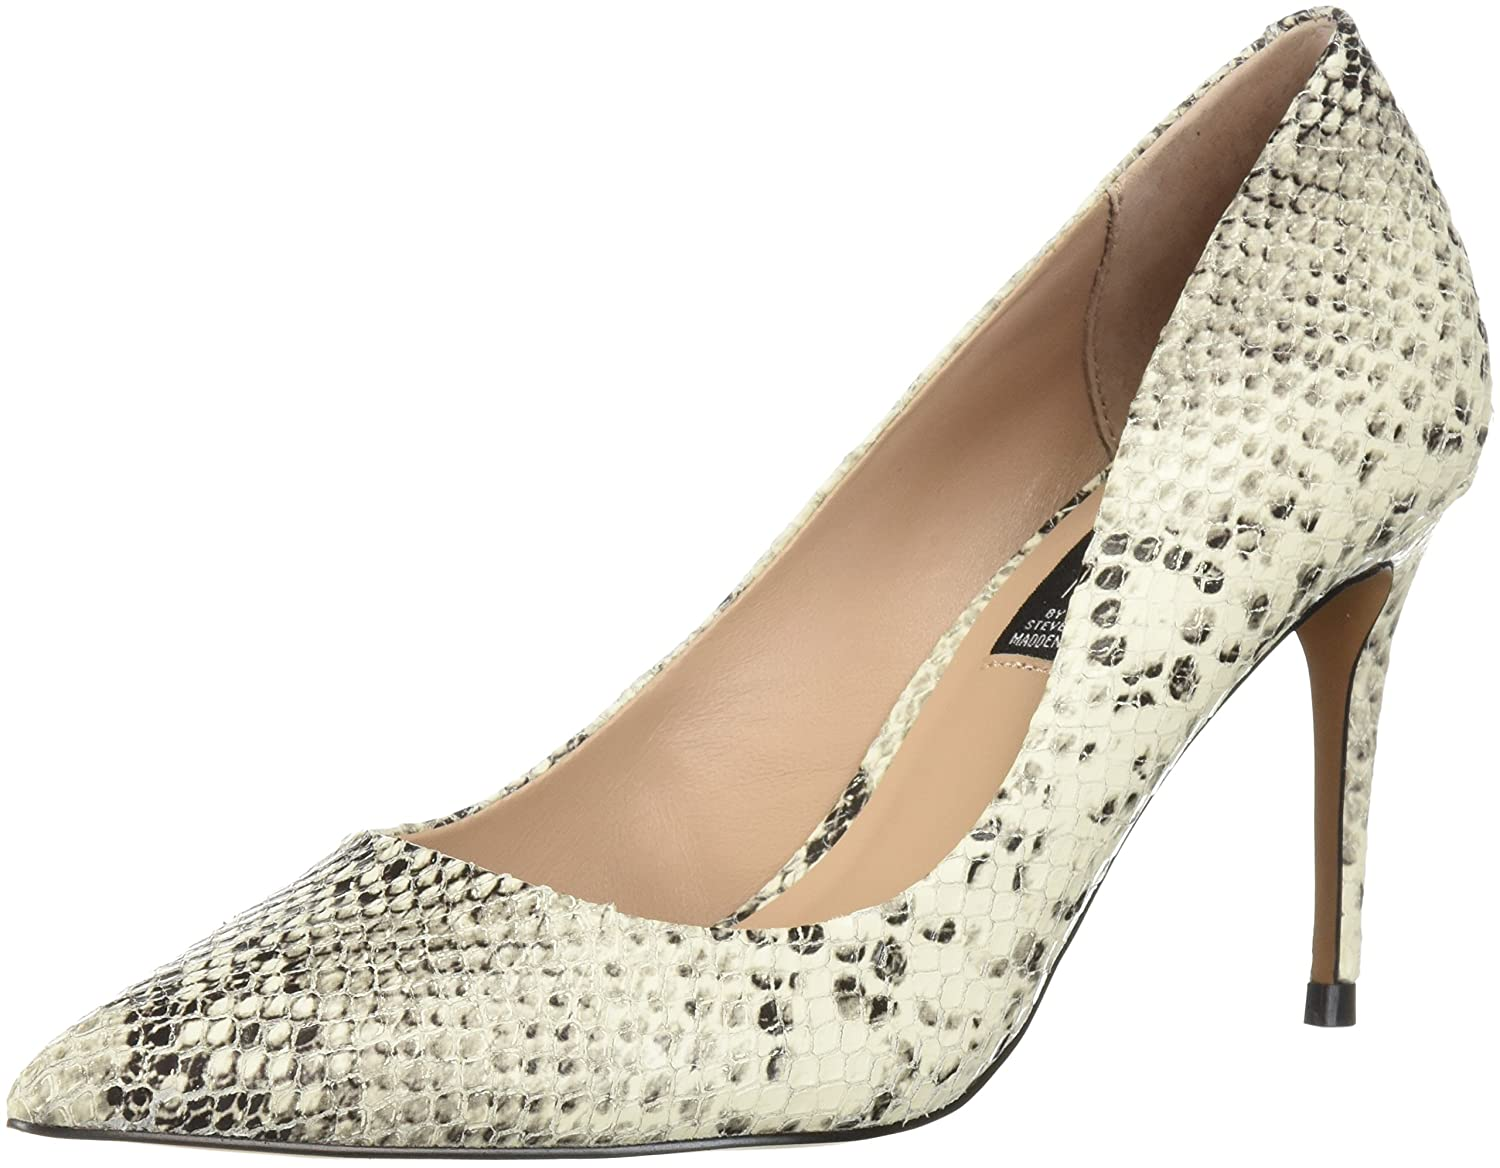 STEVEN by Steve Madden Women's Local Pump B077HTHJDC 9.5 B(M) US|White/Multi